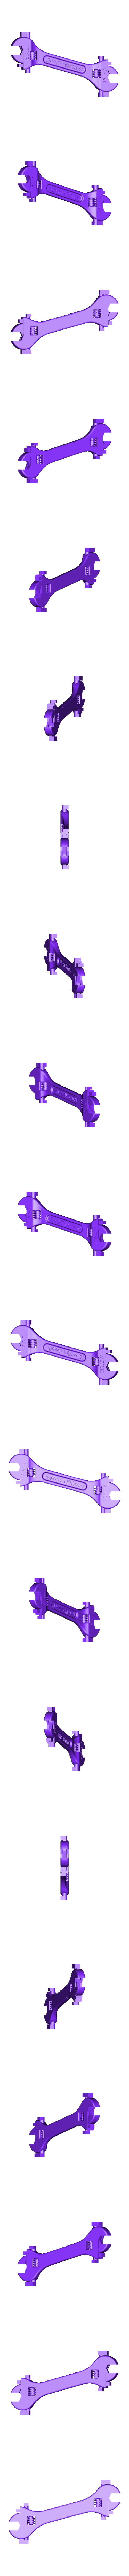 SmartWrench-SAE.stl Download free STL file Fully assembled 3D printable SMART wrench • 3D printer design, bLiTzJoN